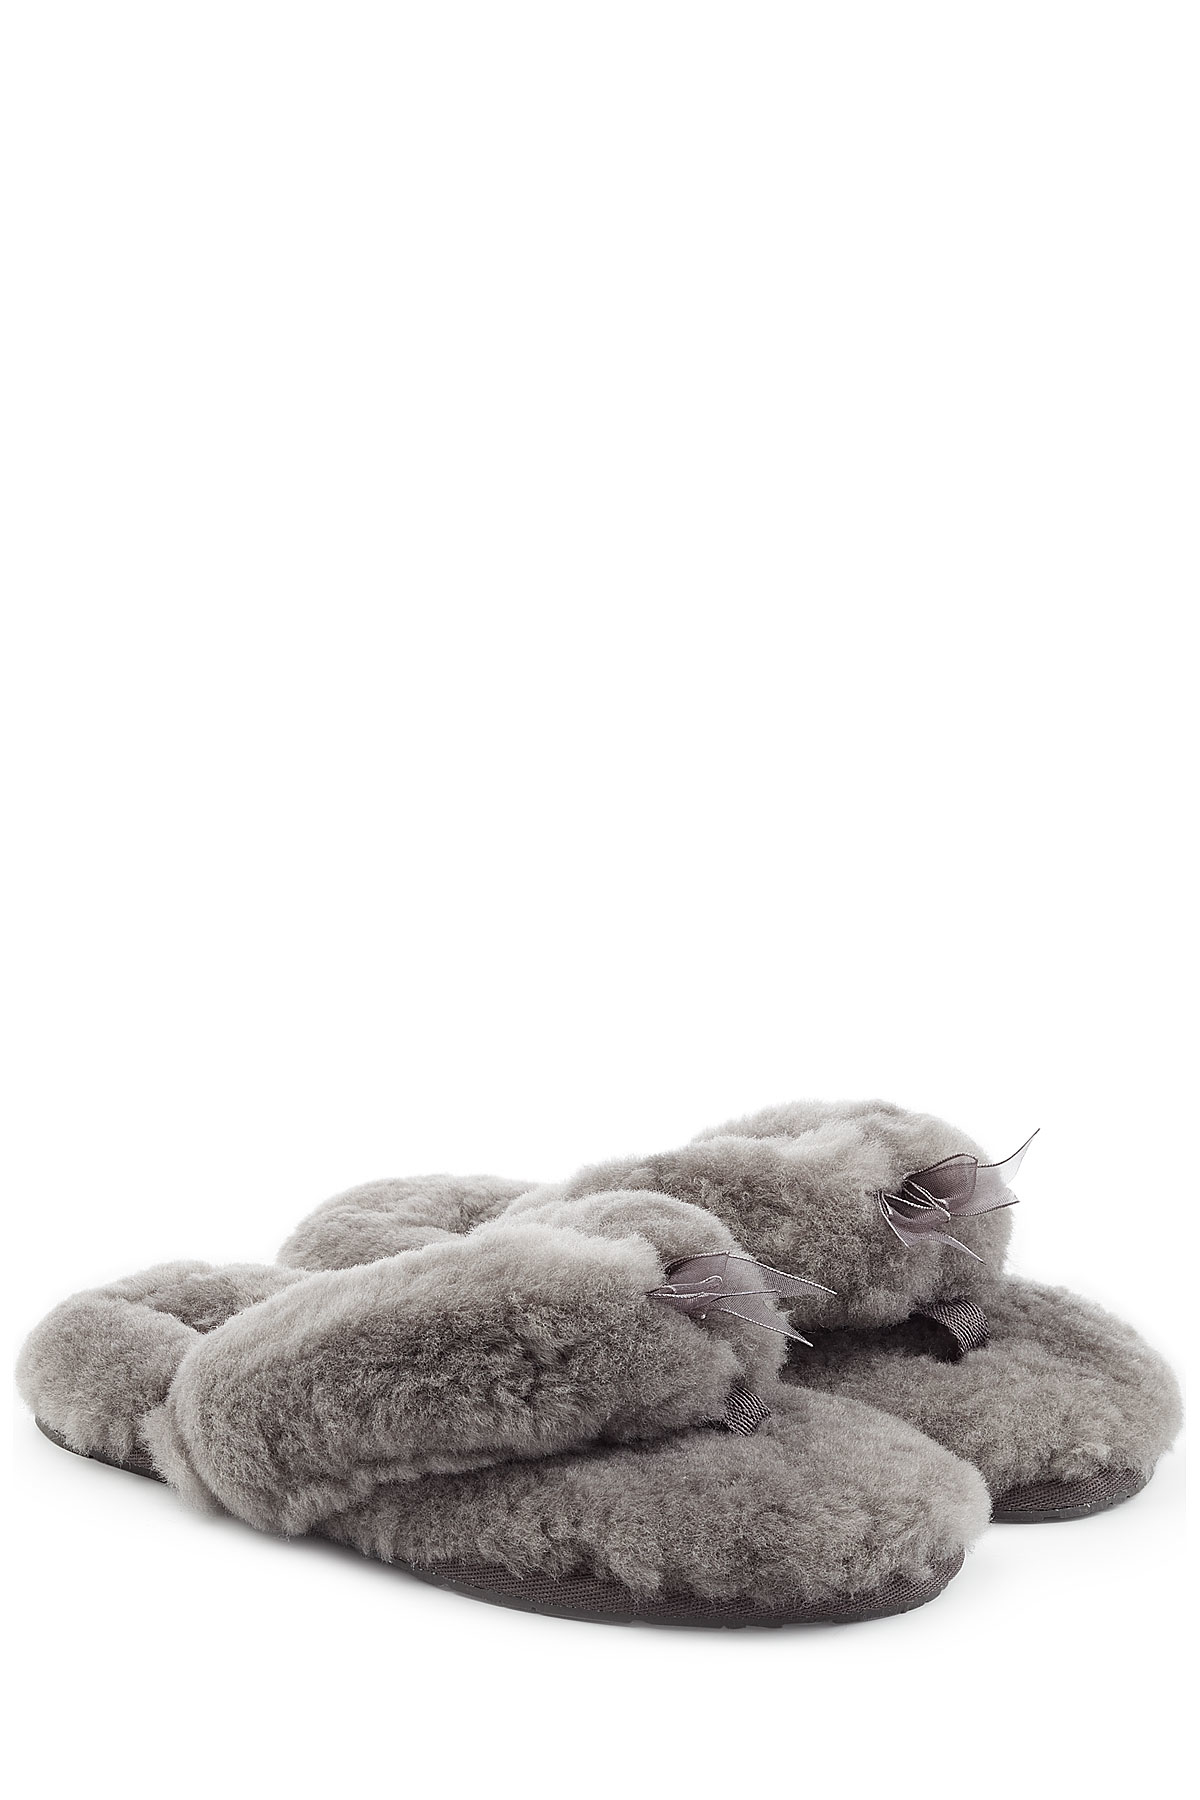 grey ugg flip flop slippers